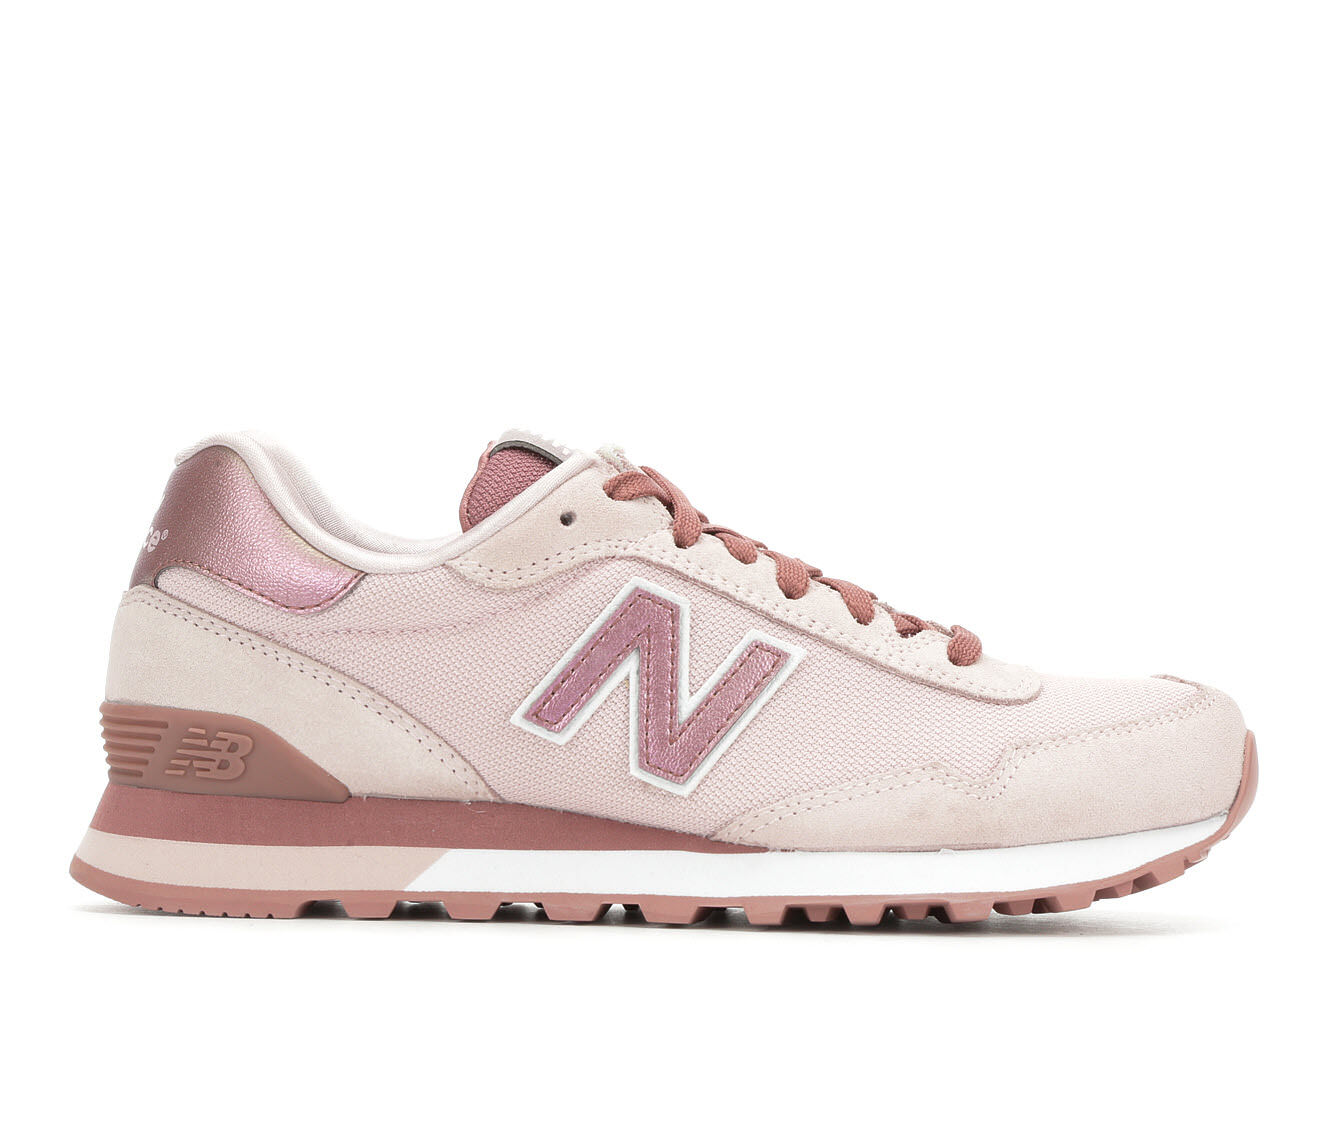 Various Sizes Women's New Balance WL515 Retro Sneakers Pink/Conch/Wht